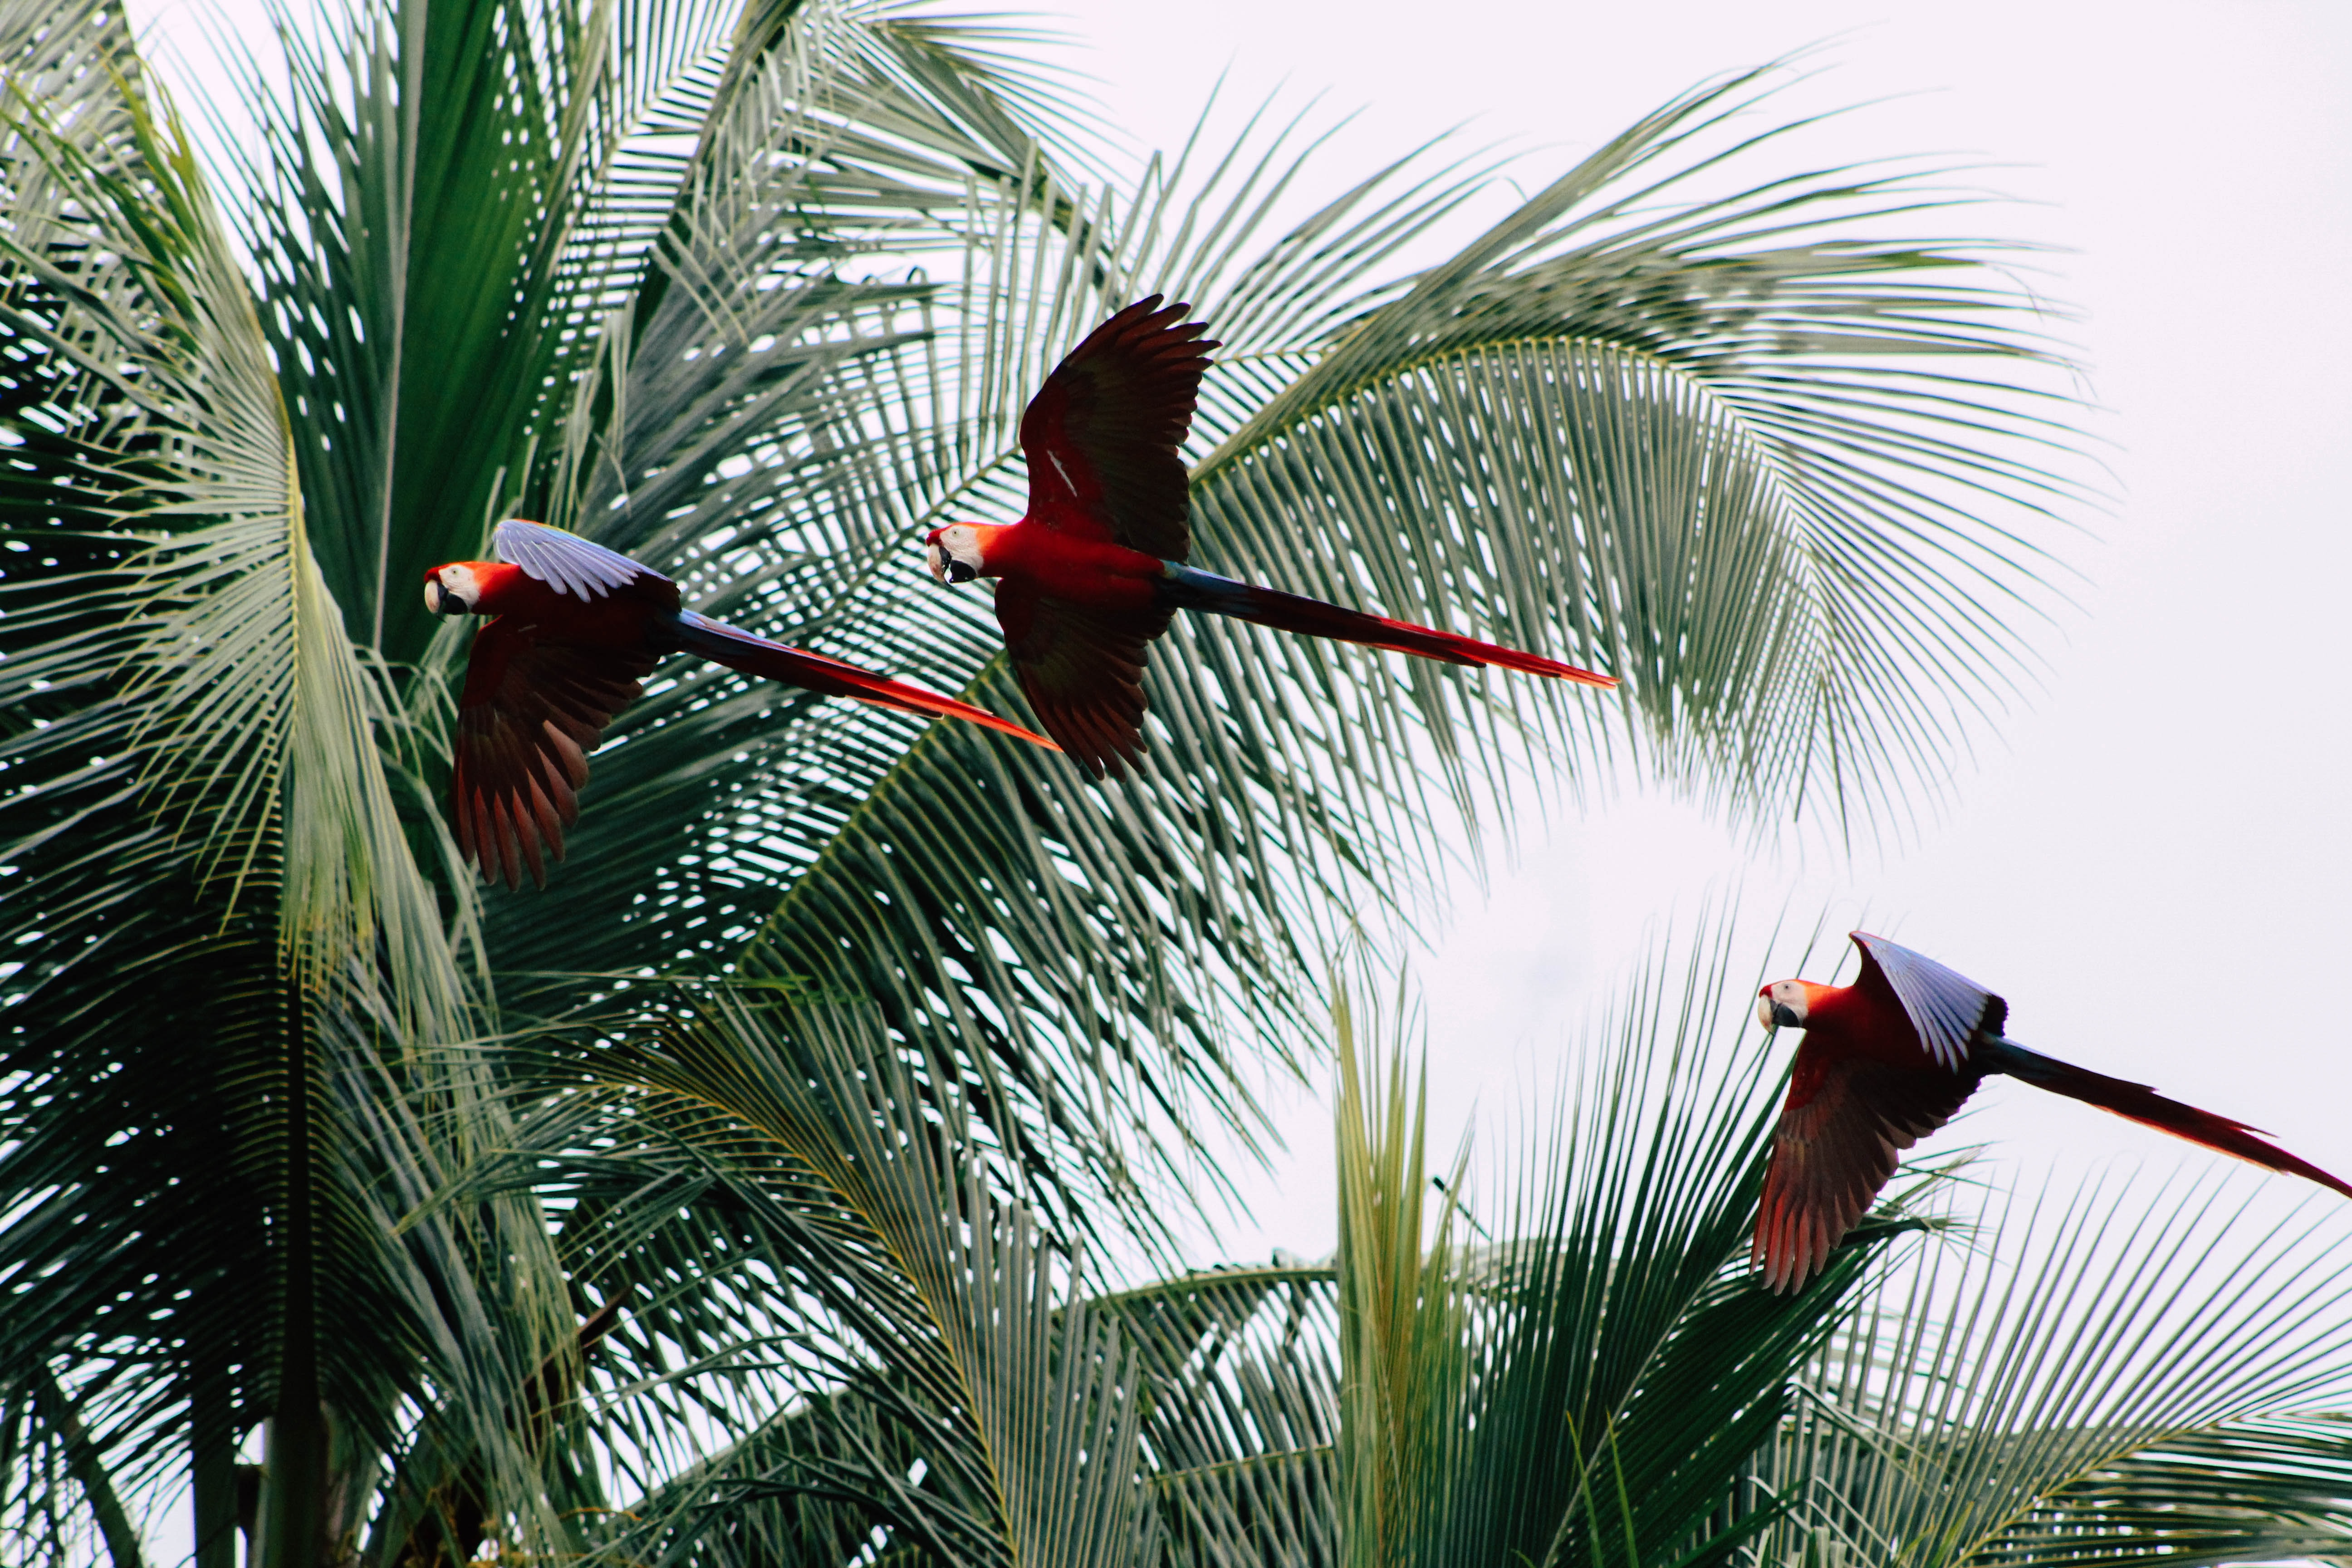 three blue-and-red macaws flying near coconut trees